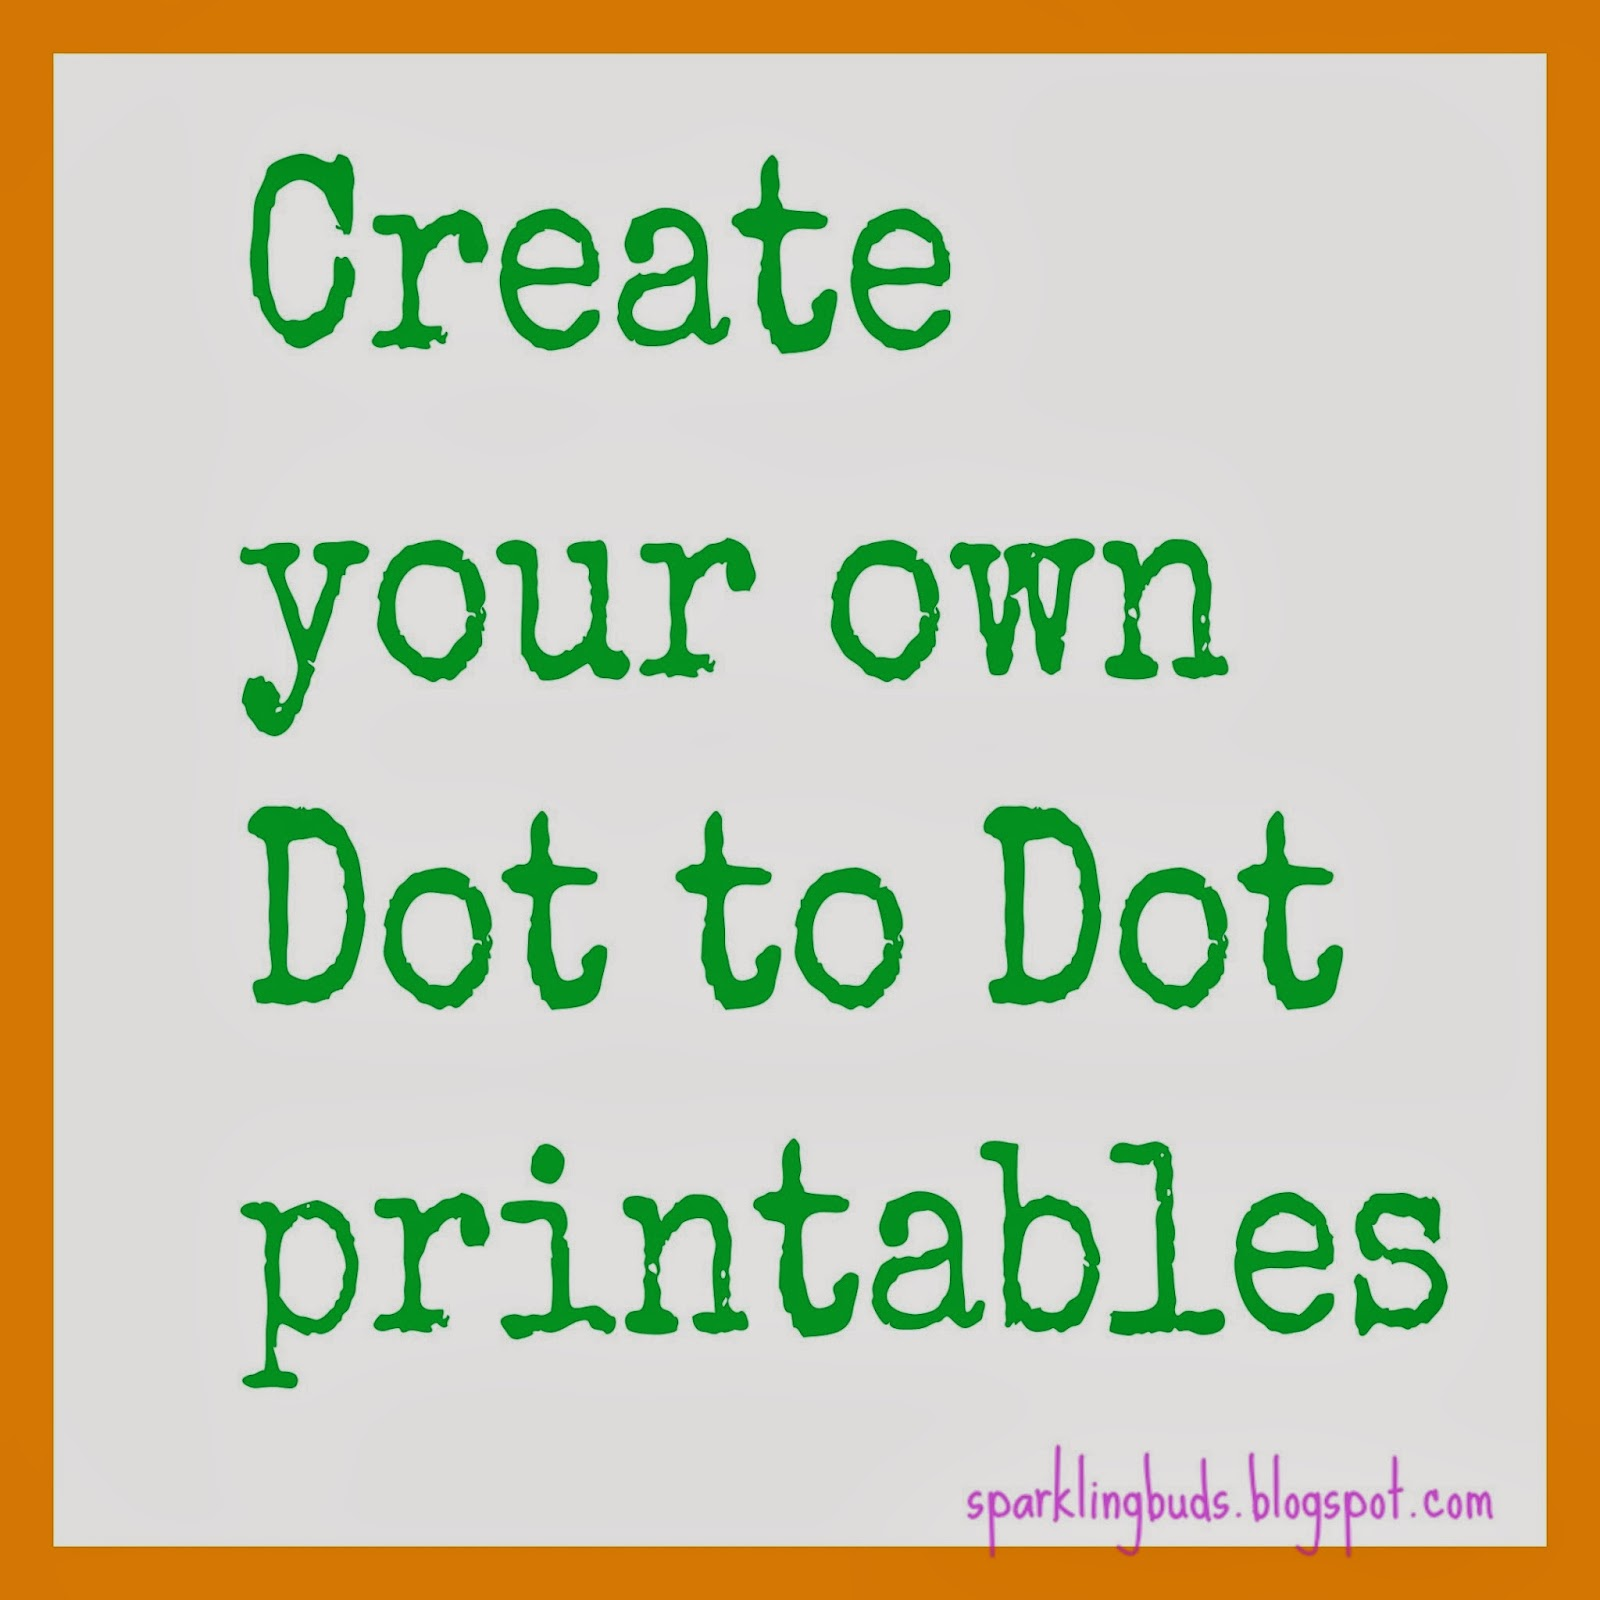 Make Your Own Dot To Dot Printable Using Gimp Sparklingbuds